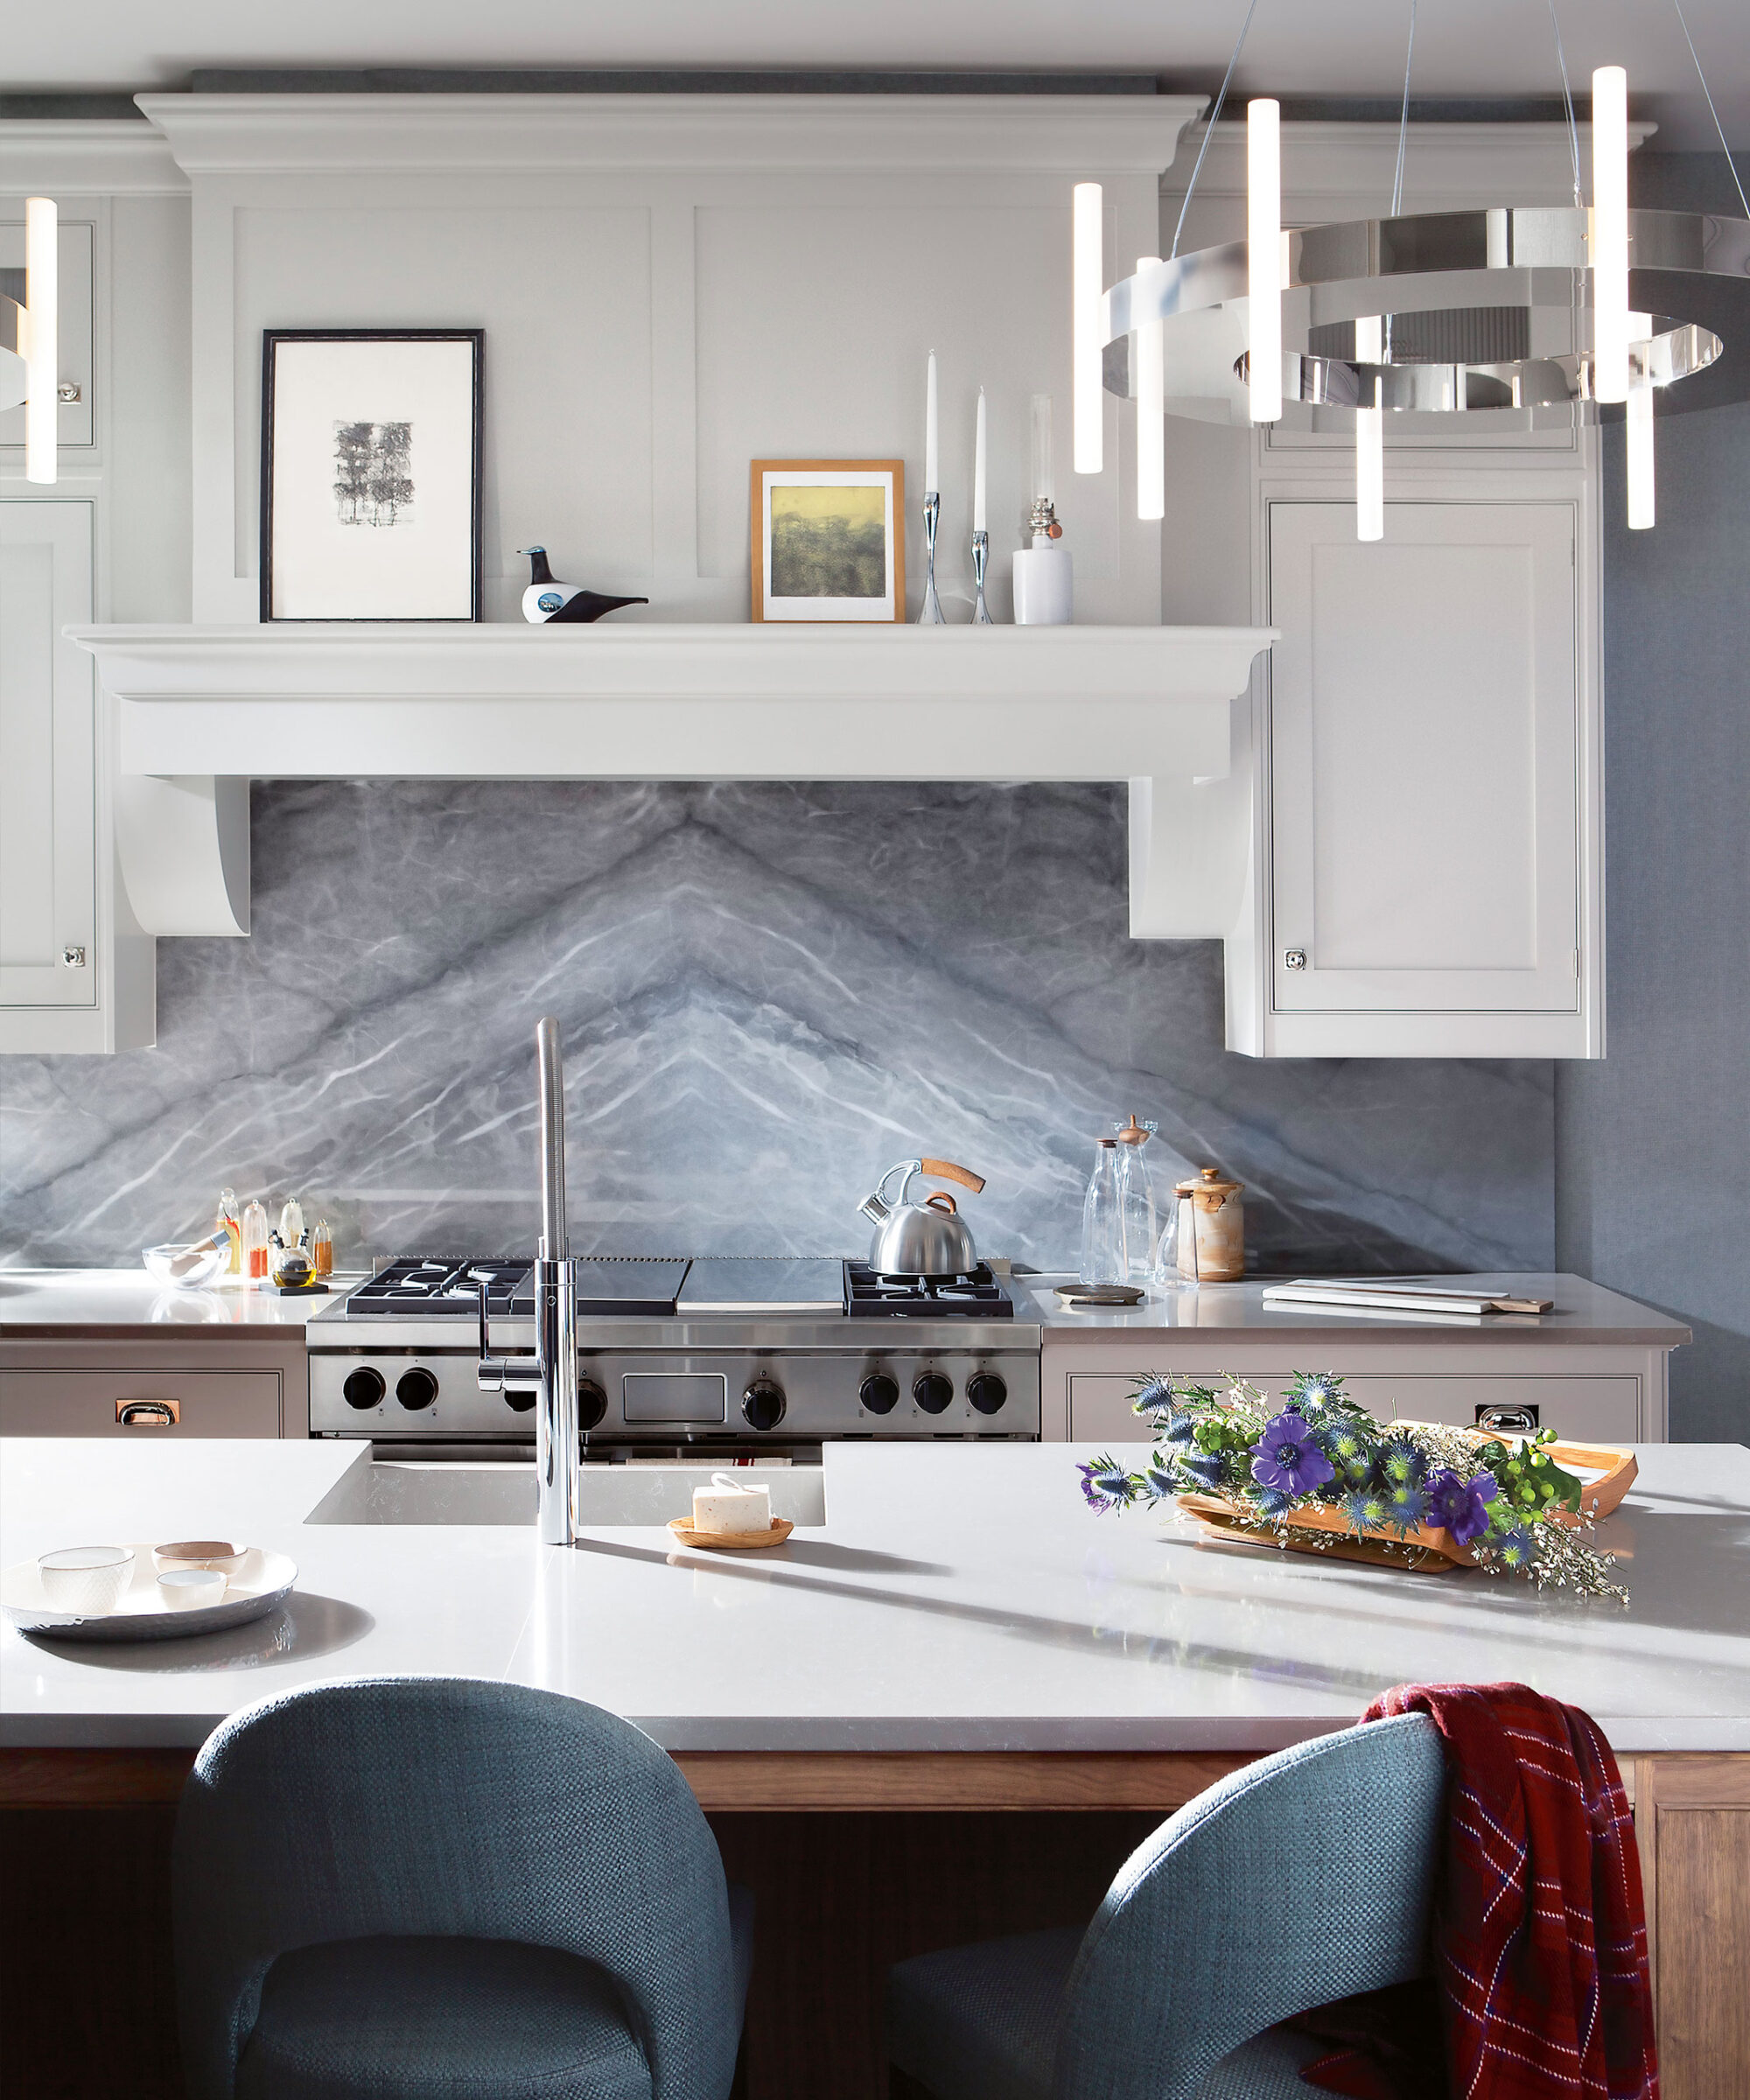 Smallbone Iconic handpainted kitchen in cream with grey bookmatched marble splash back